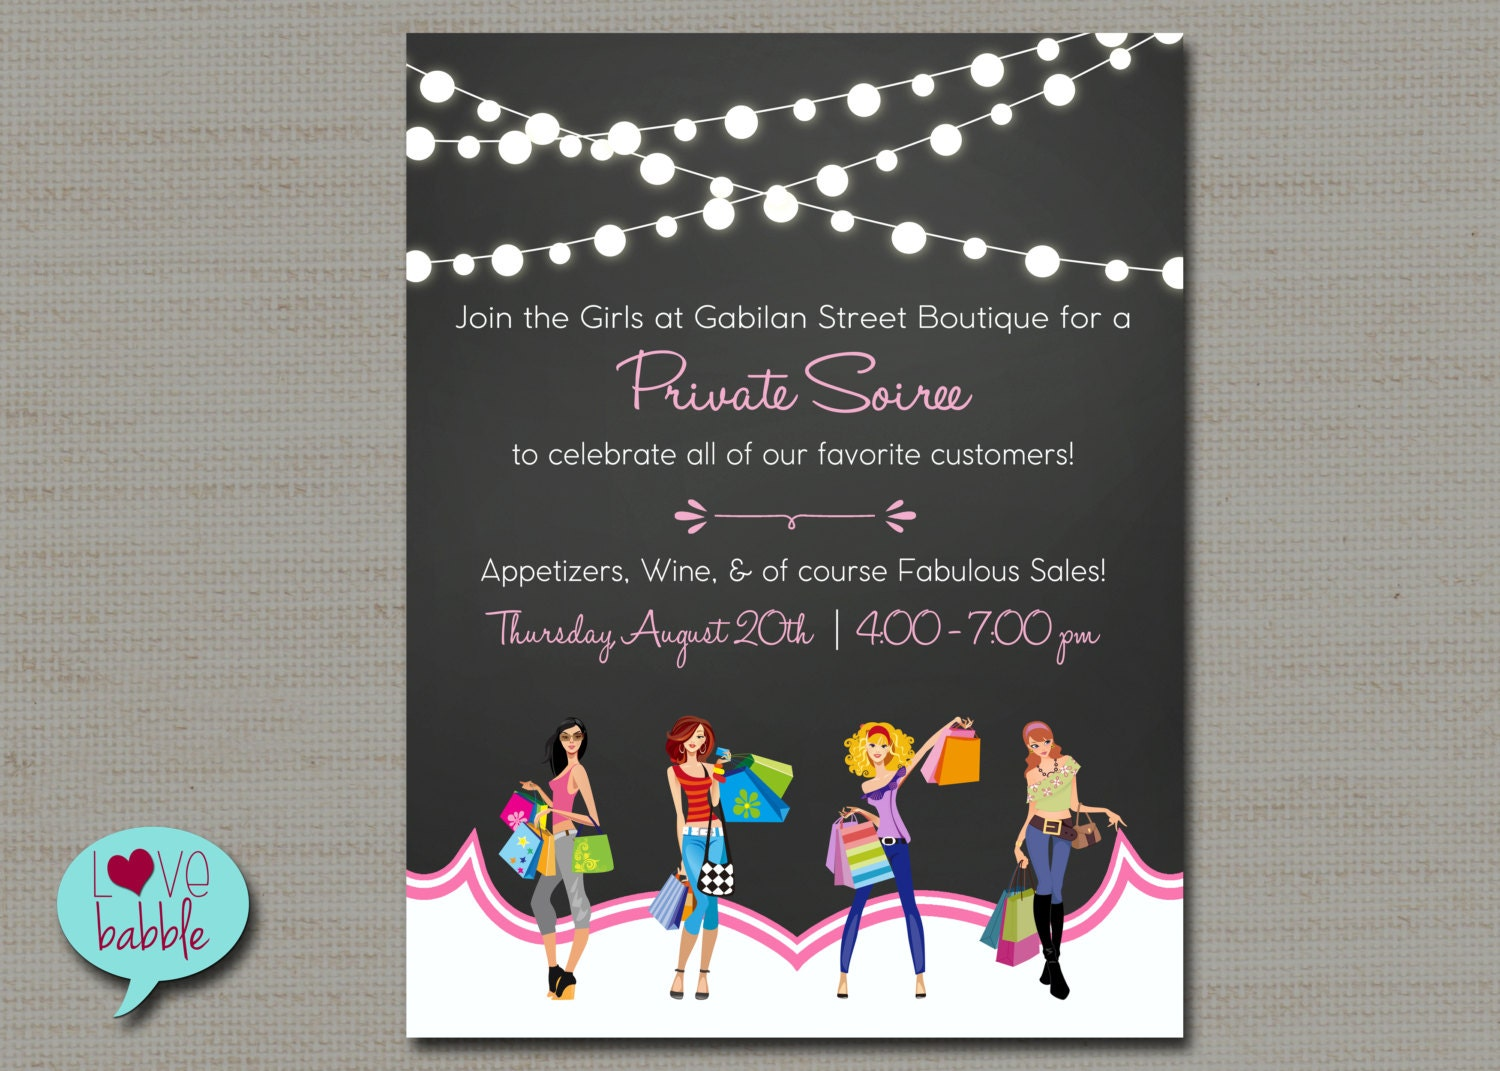 Shopping flyer Home Shopping Party Jewelry Boutique Nail